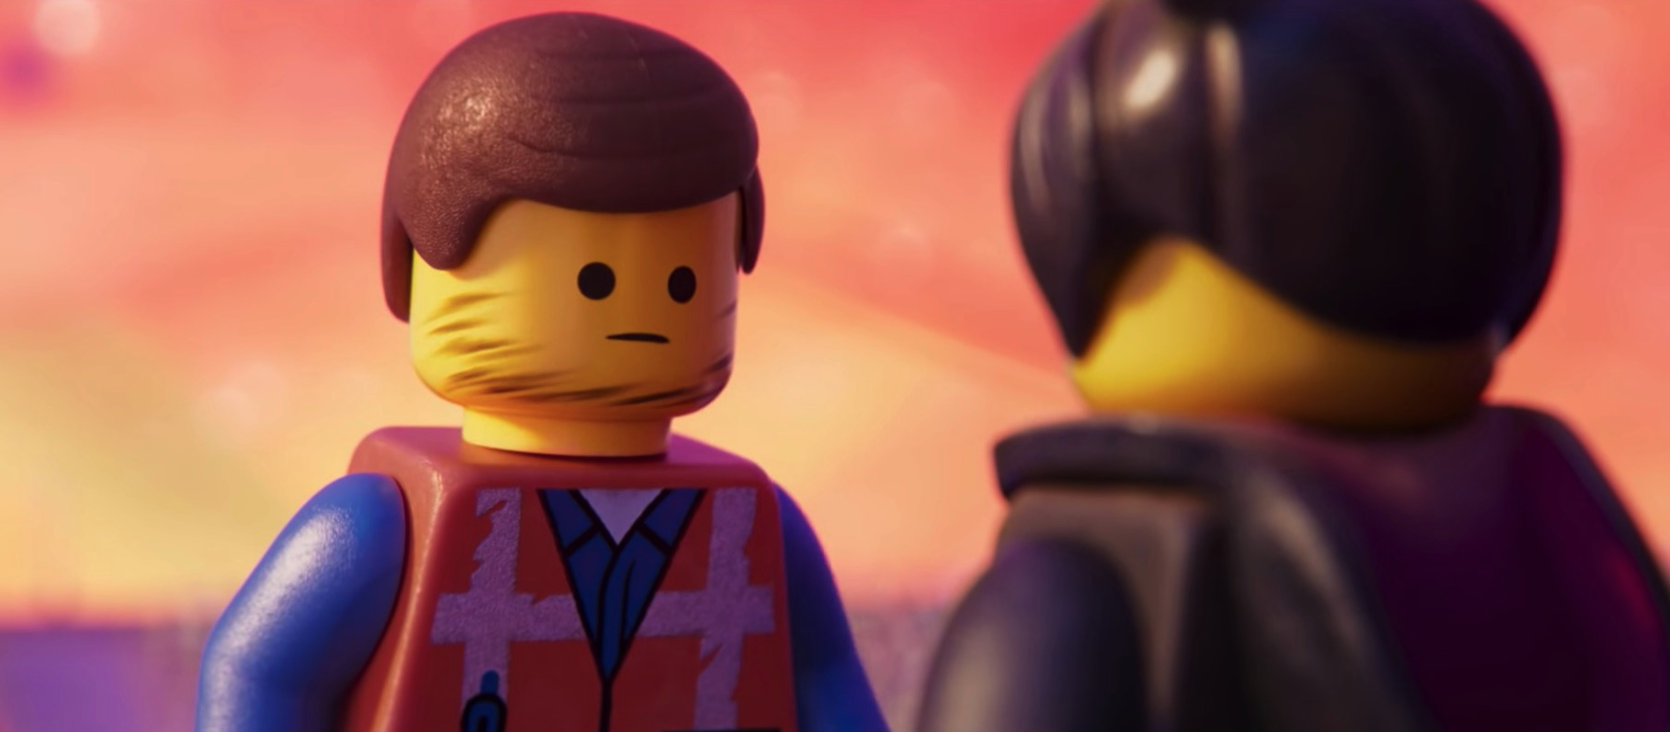 The LEGO Movie 2: The Second Part,  courtesy of Warner Bros.